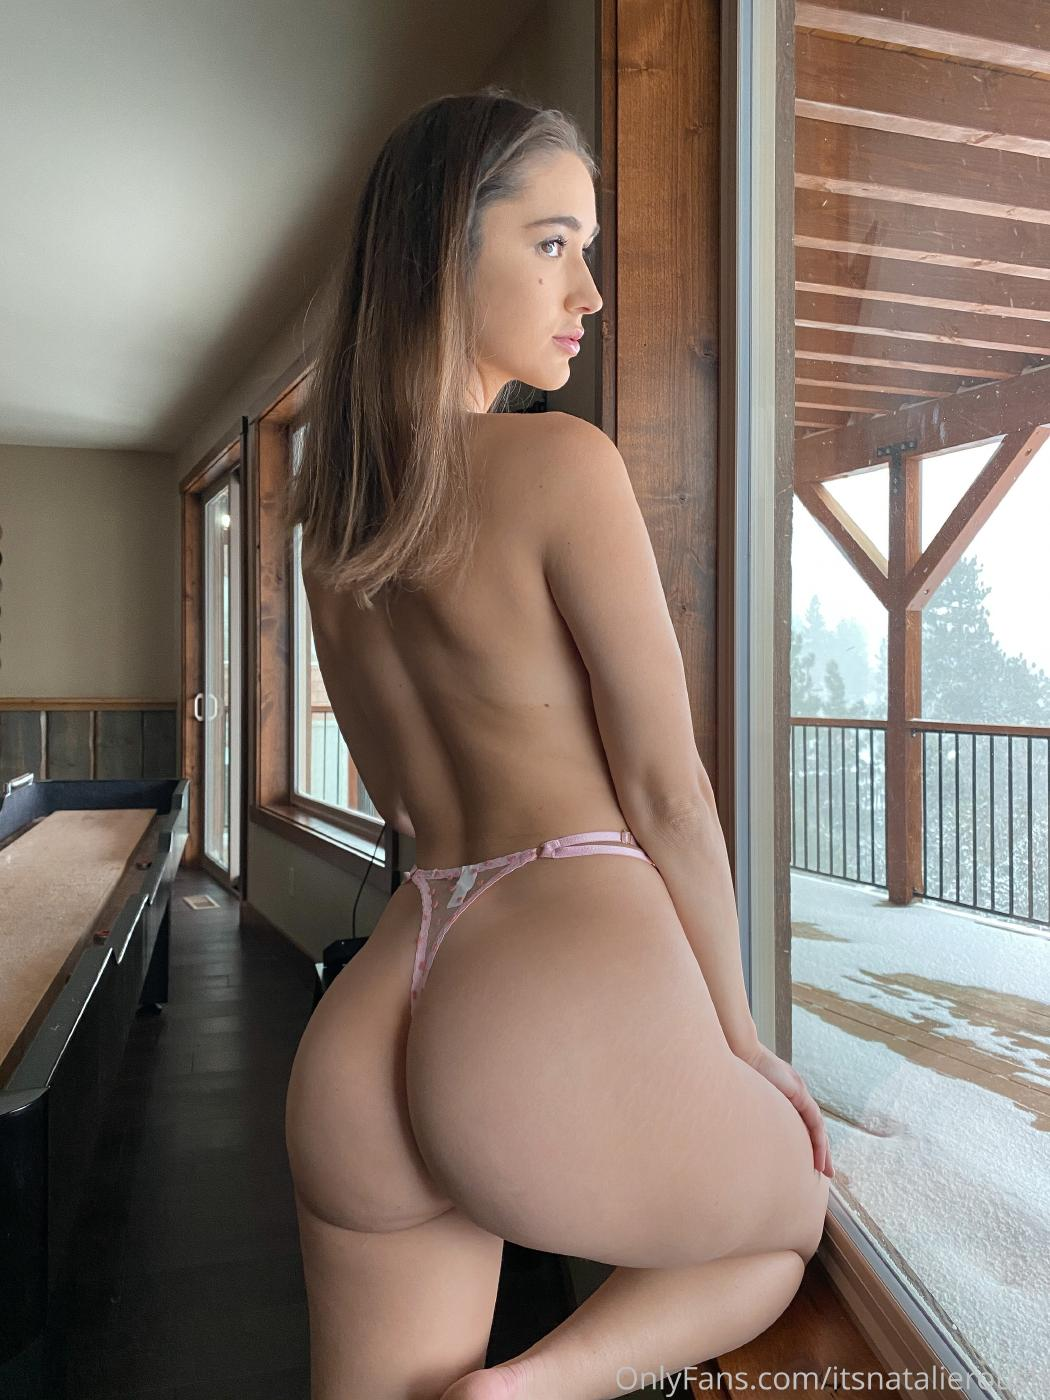 Natalie Roush Nude Topless Onlyfans Set Leaked0007